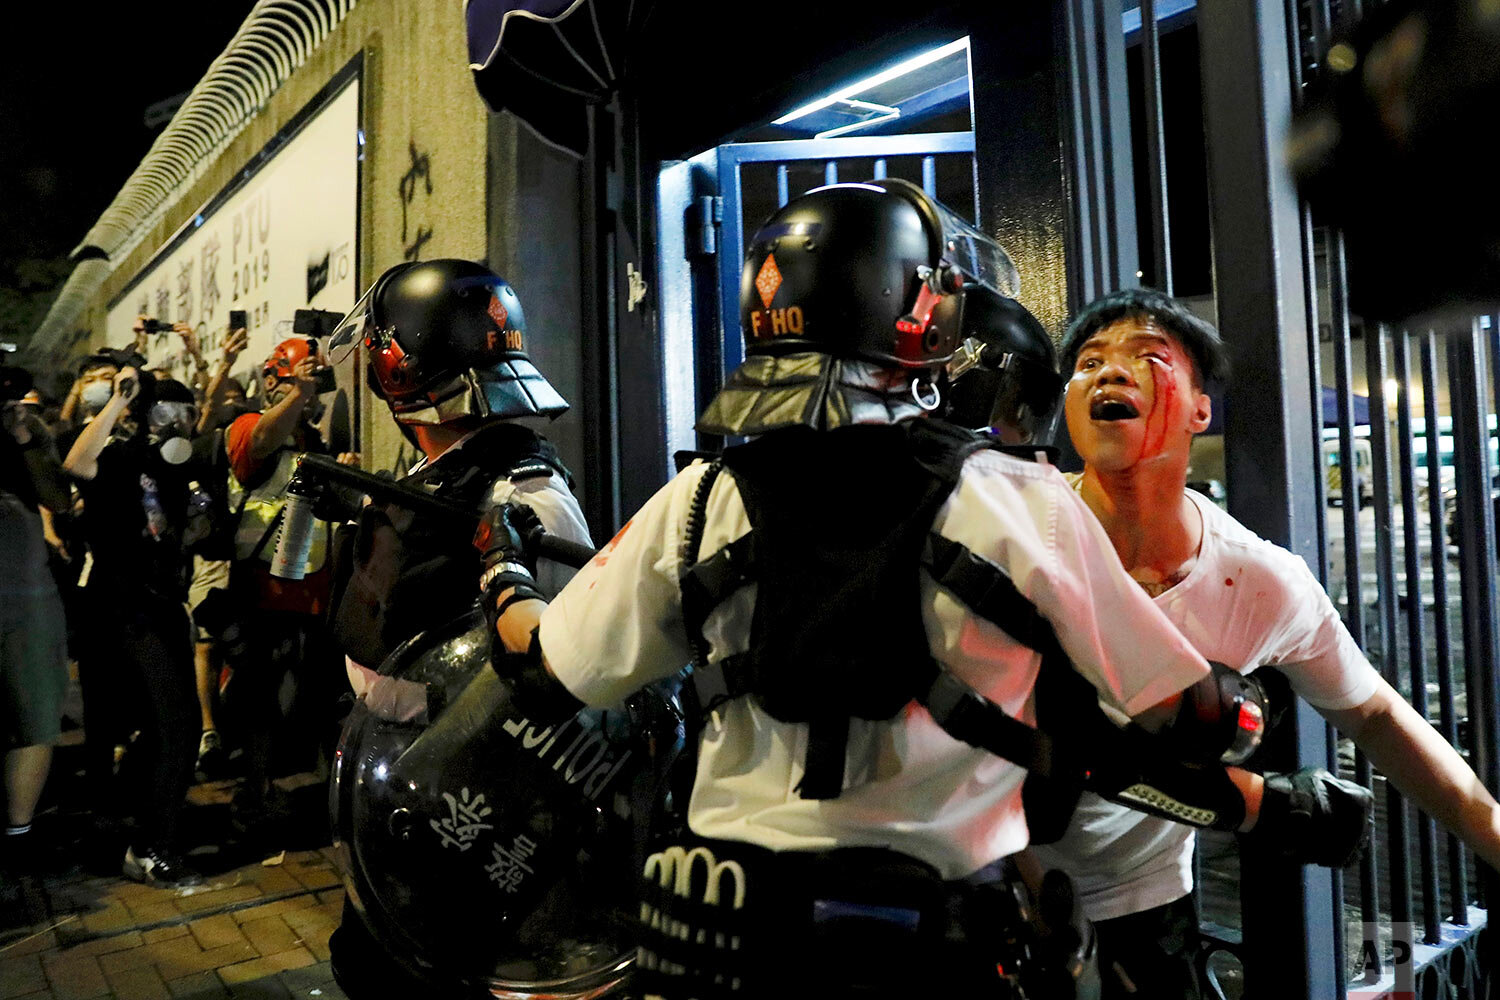 A bleeding man is taken away by policemen after he was attacked by protesters outside Kwai Chung police station in Hong Kong on July 31, 2019. (AP Photo/Vincent Yu)